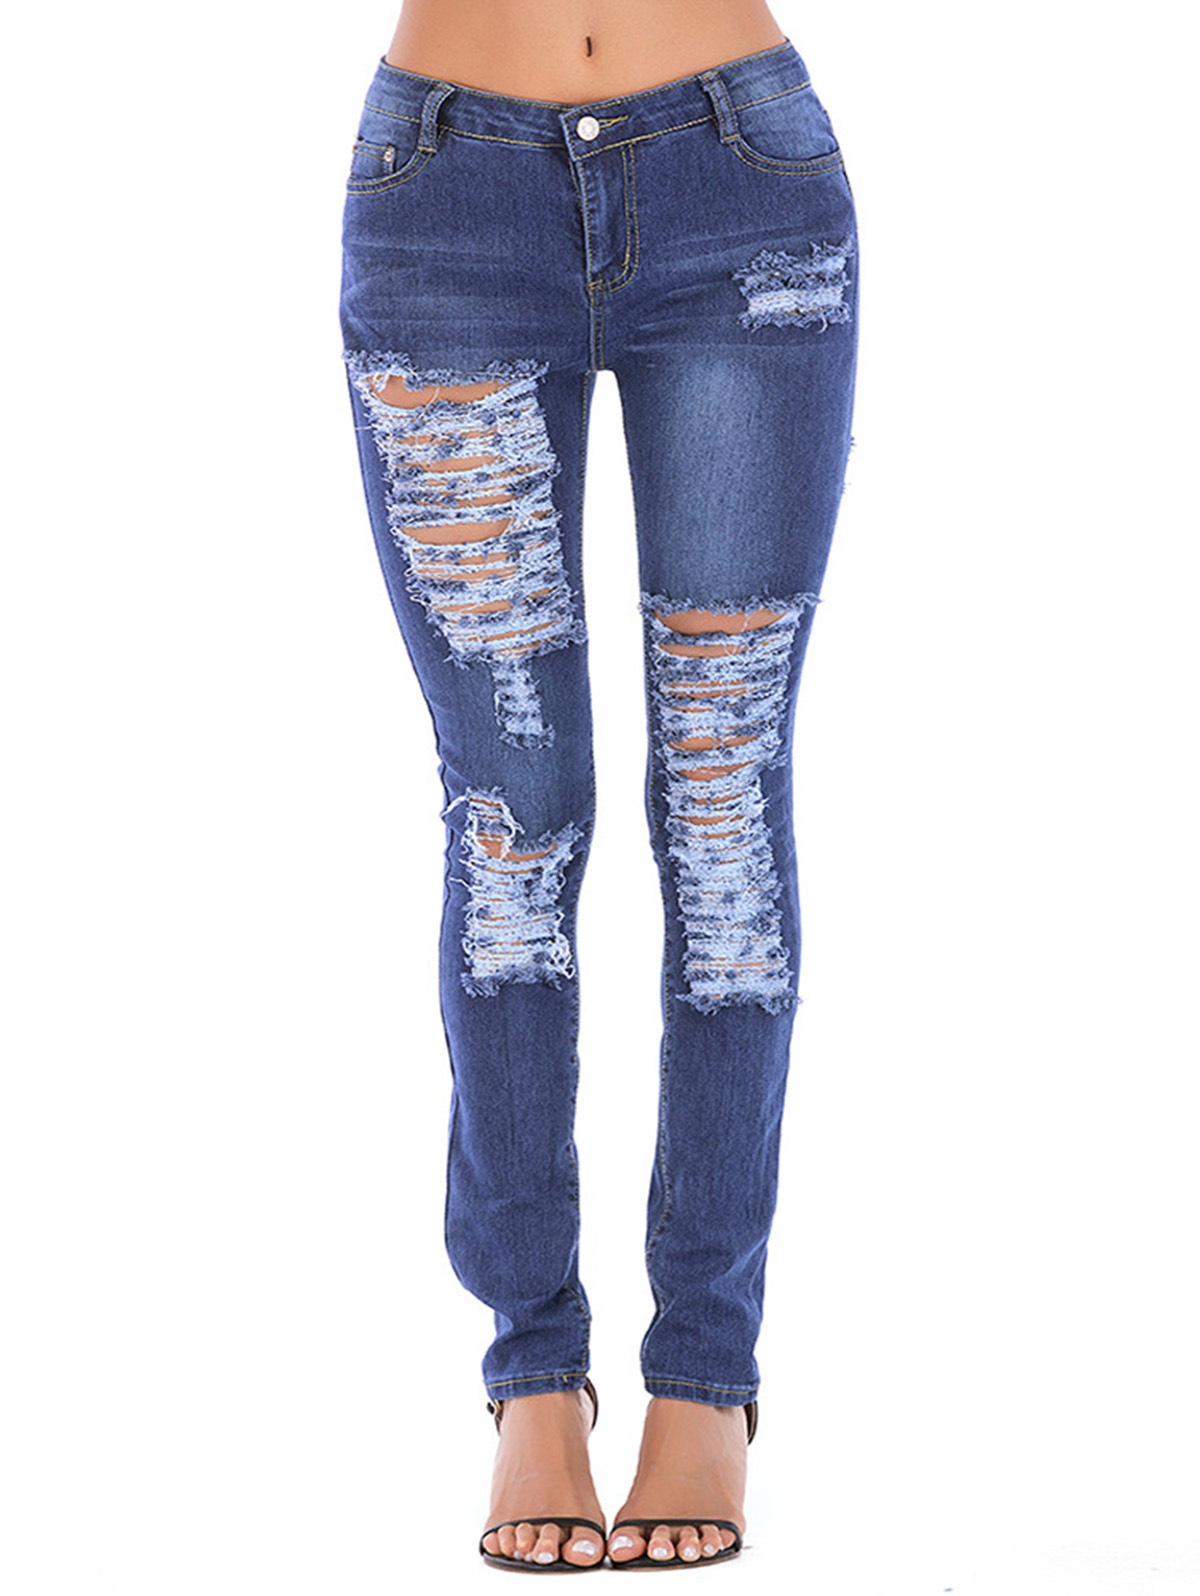 Wipalo Women Juniors Distressed Slim Fit Stretchy Skinny Denim Jeans Ladies Holes Destroyed Casual Trousers Ripped Pants 3XL